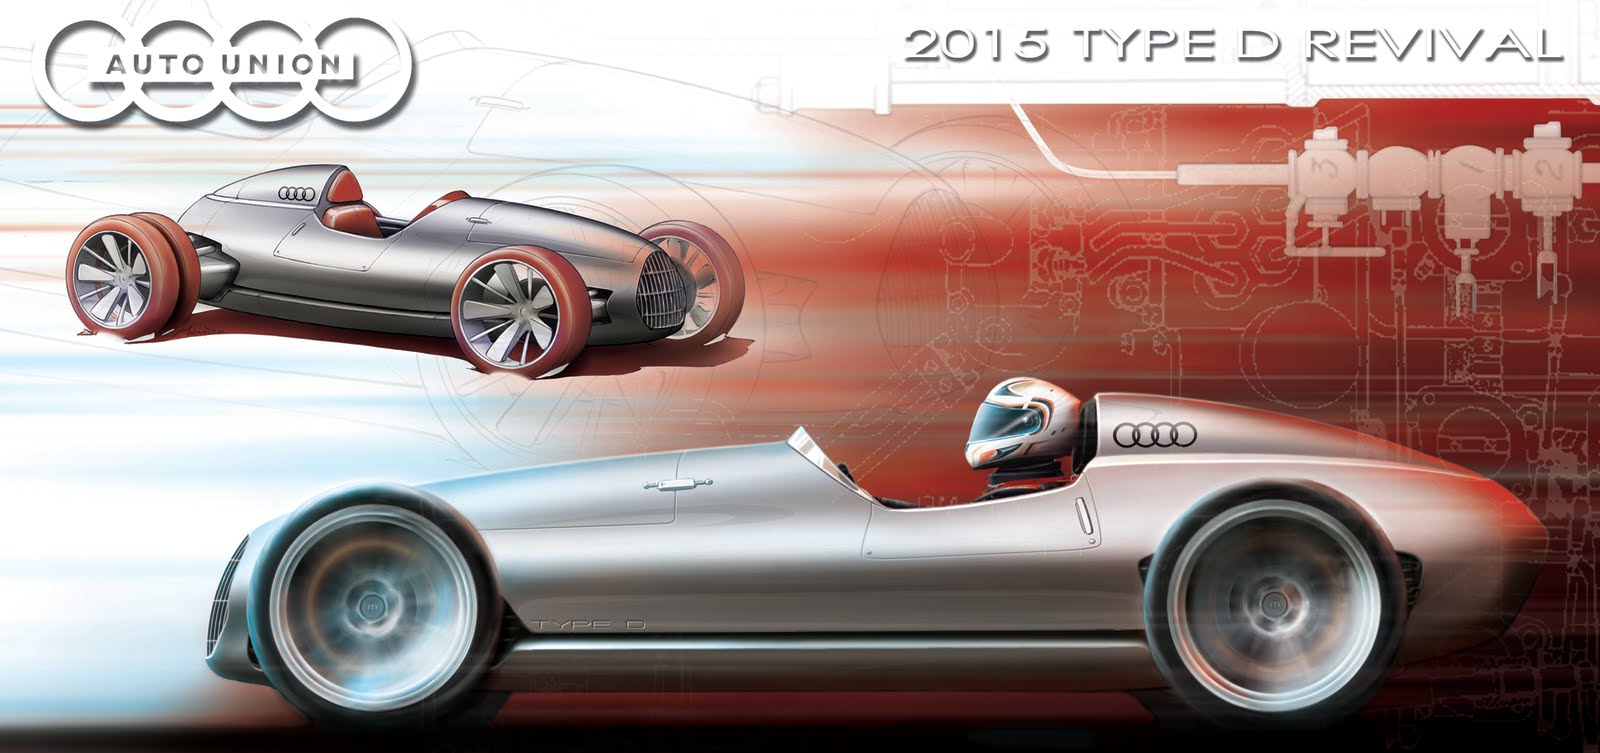 2015 auto union type d iedei for D and a motors